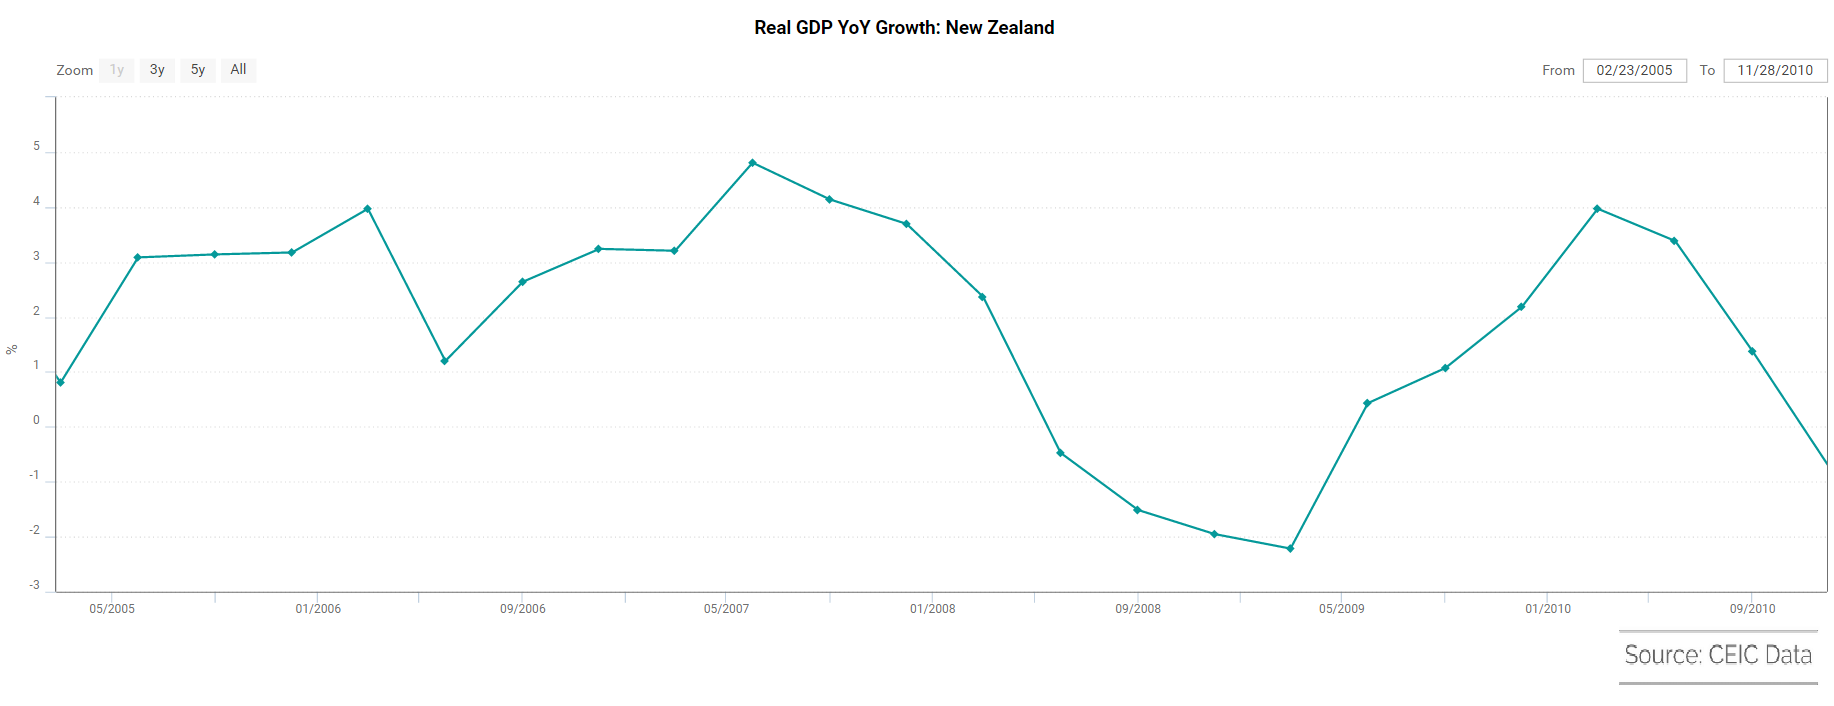 New Zealand real GDP growth YoY